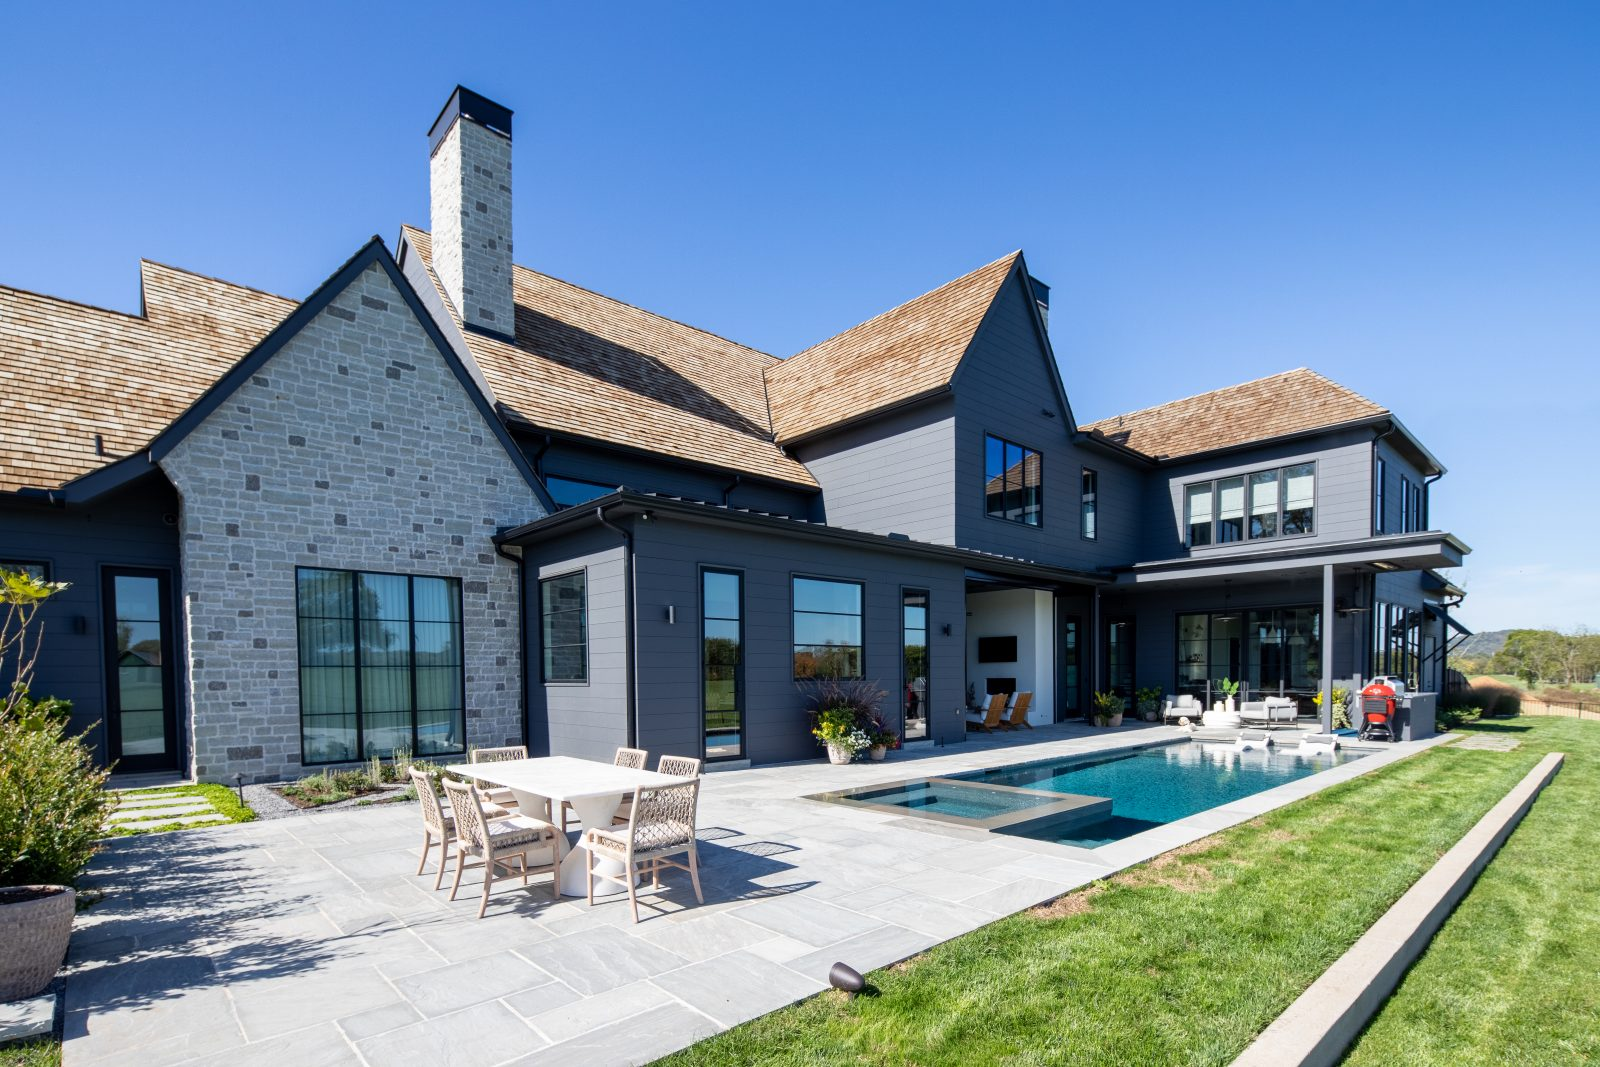 Outdoor backyard space of a luxury nashville home